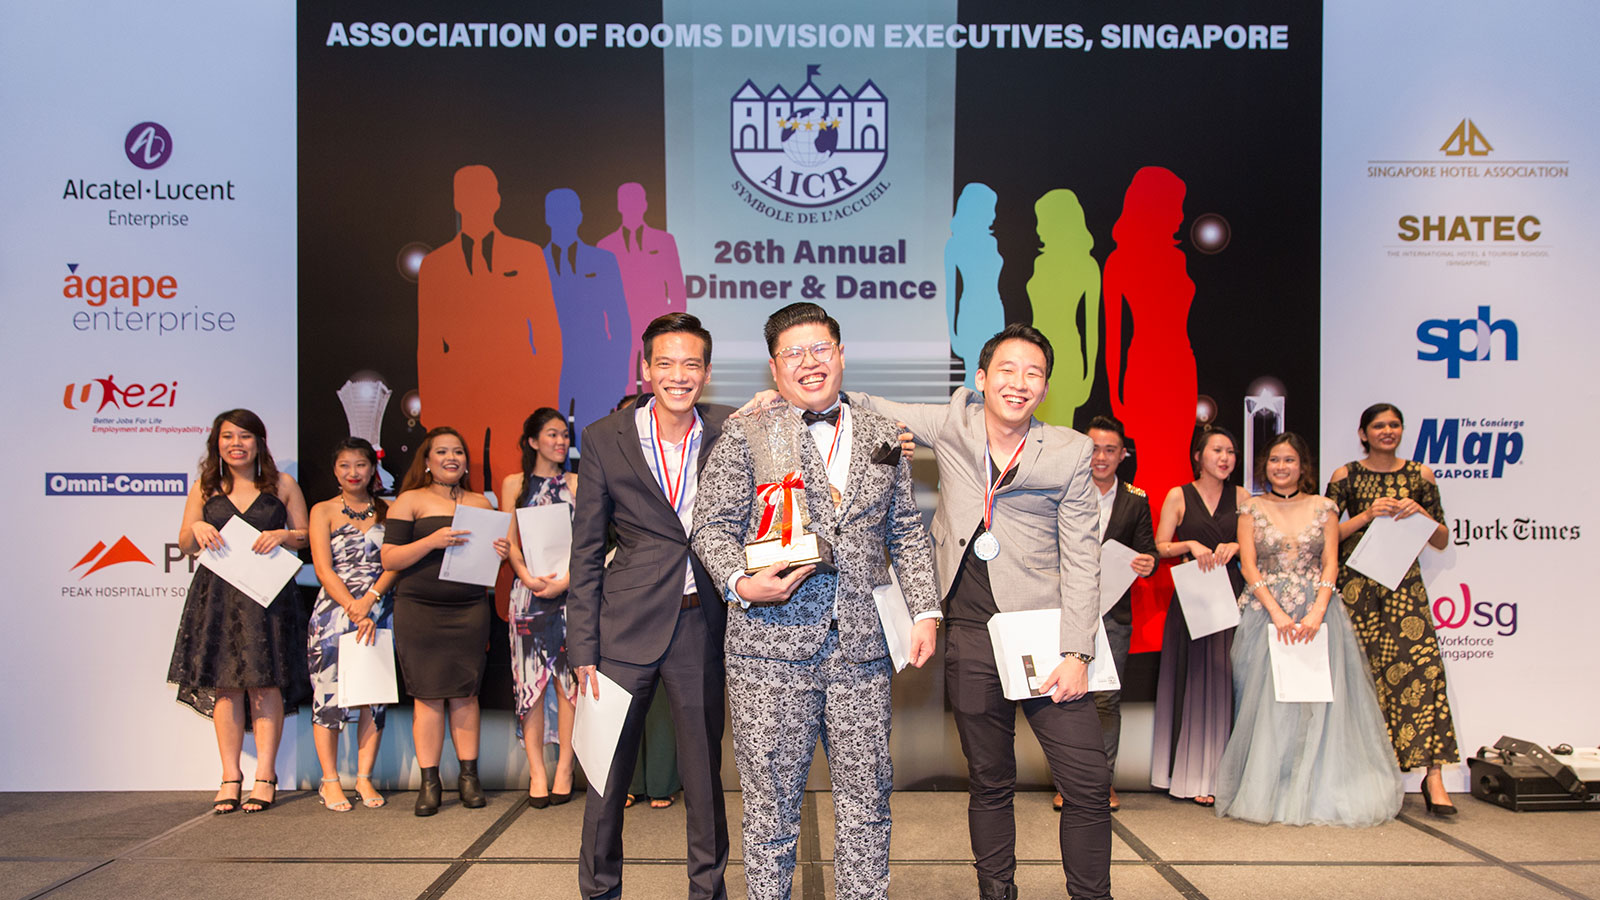 Showcase - Association of Rooms Division Executives Singapore